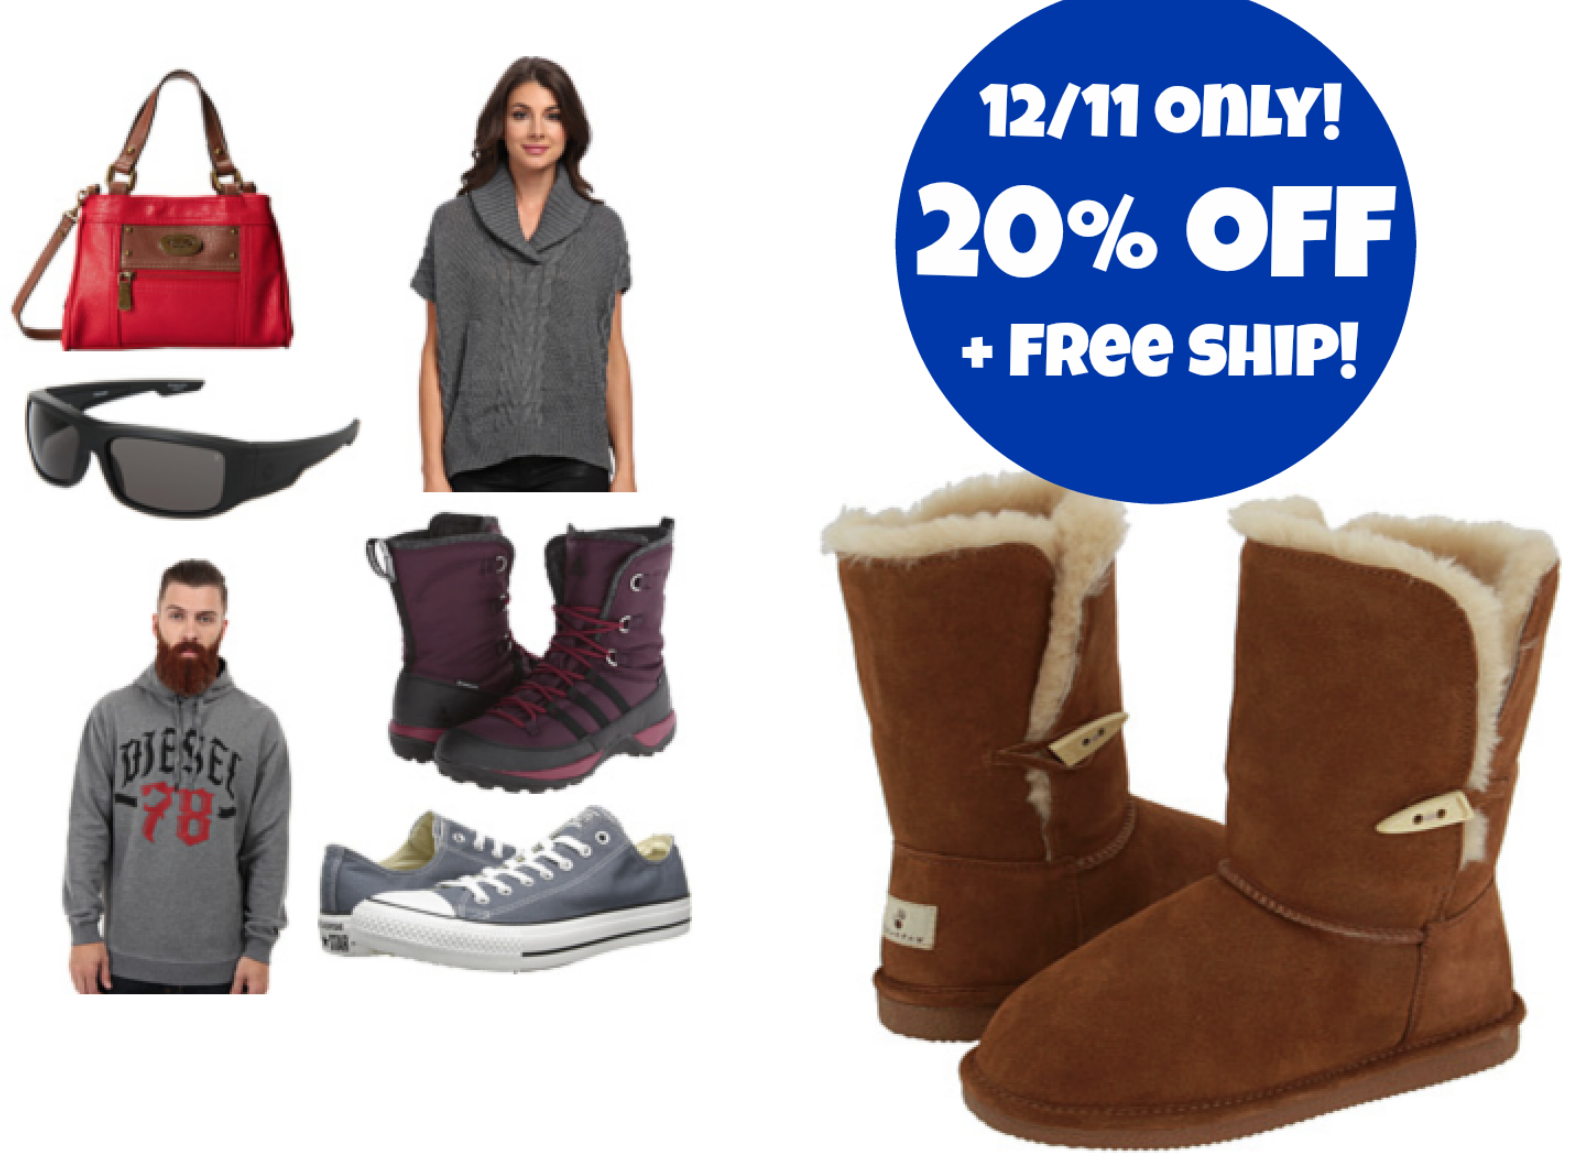 http://www.thebinderladies.com/2014/12/1211-only-6pmcom-20-off-free-shipping.html